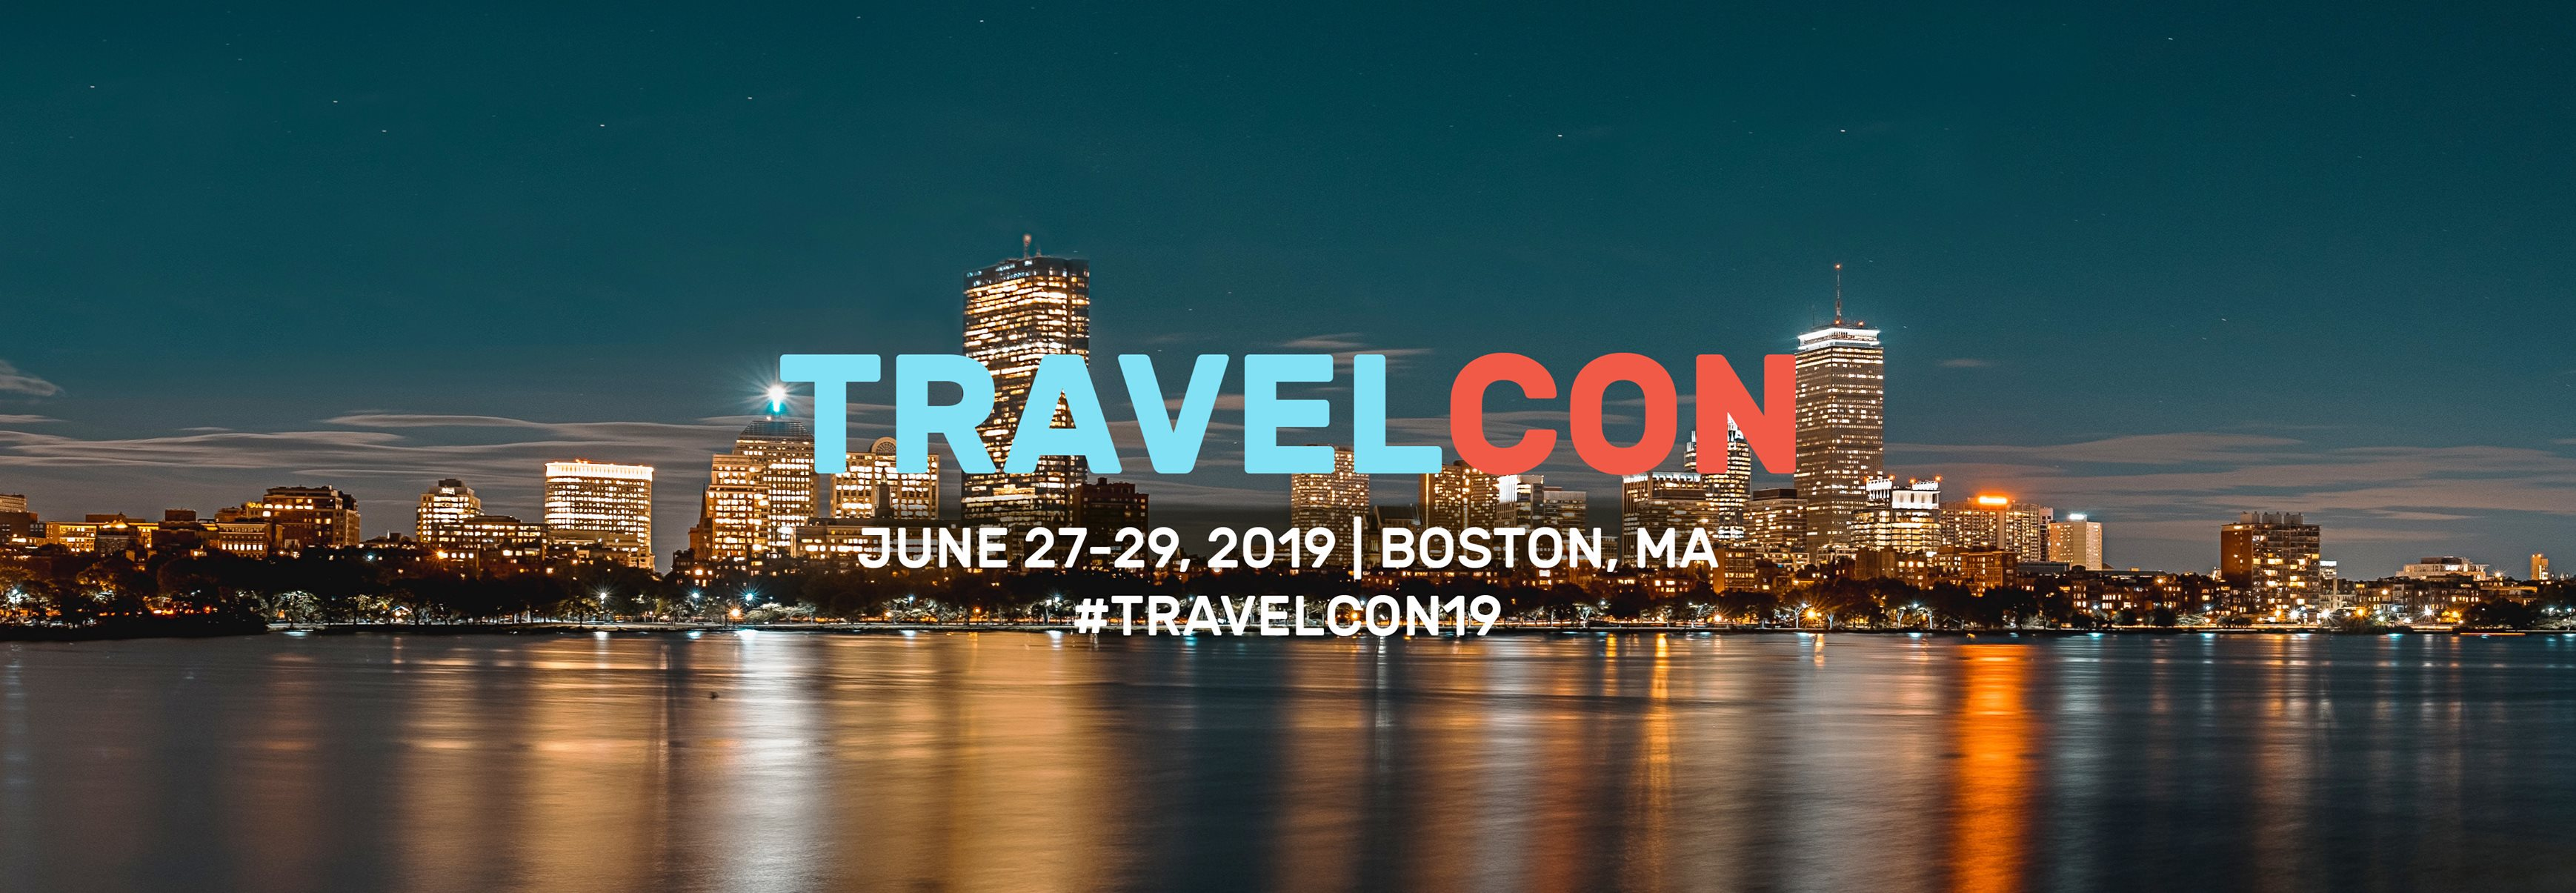 Travelcon 2019